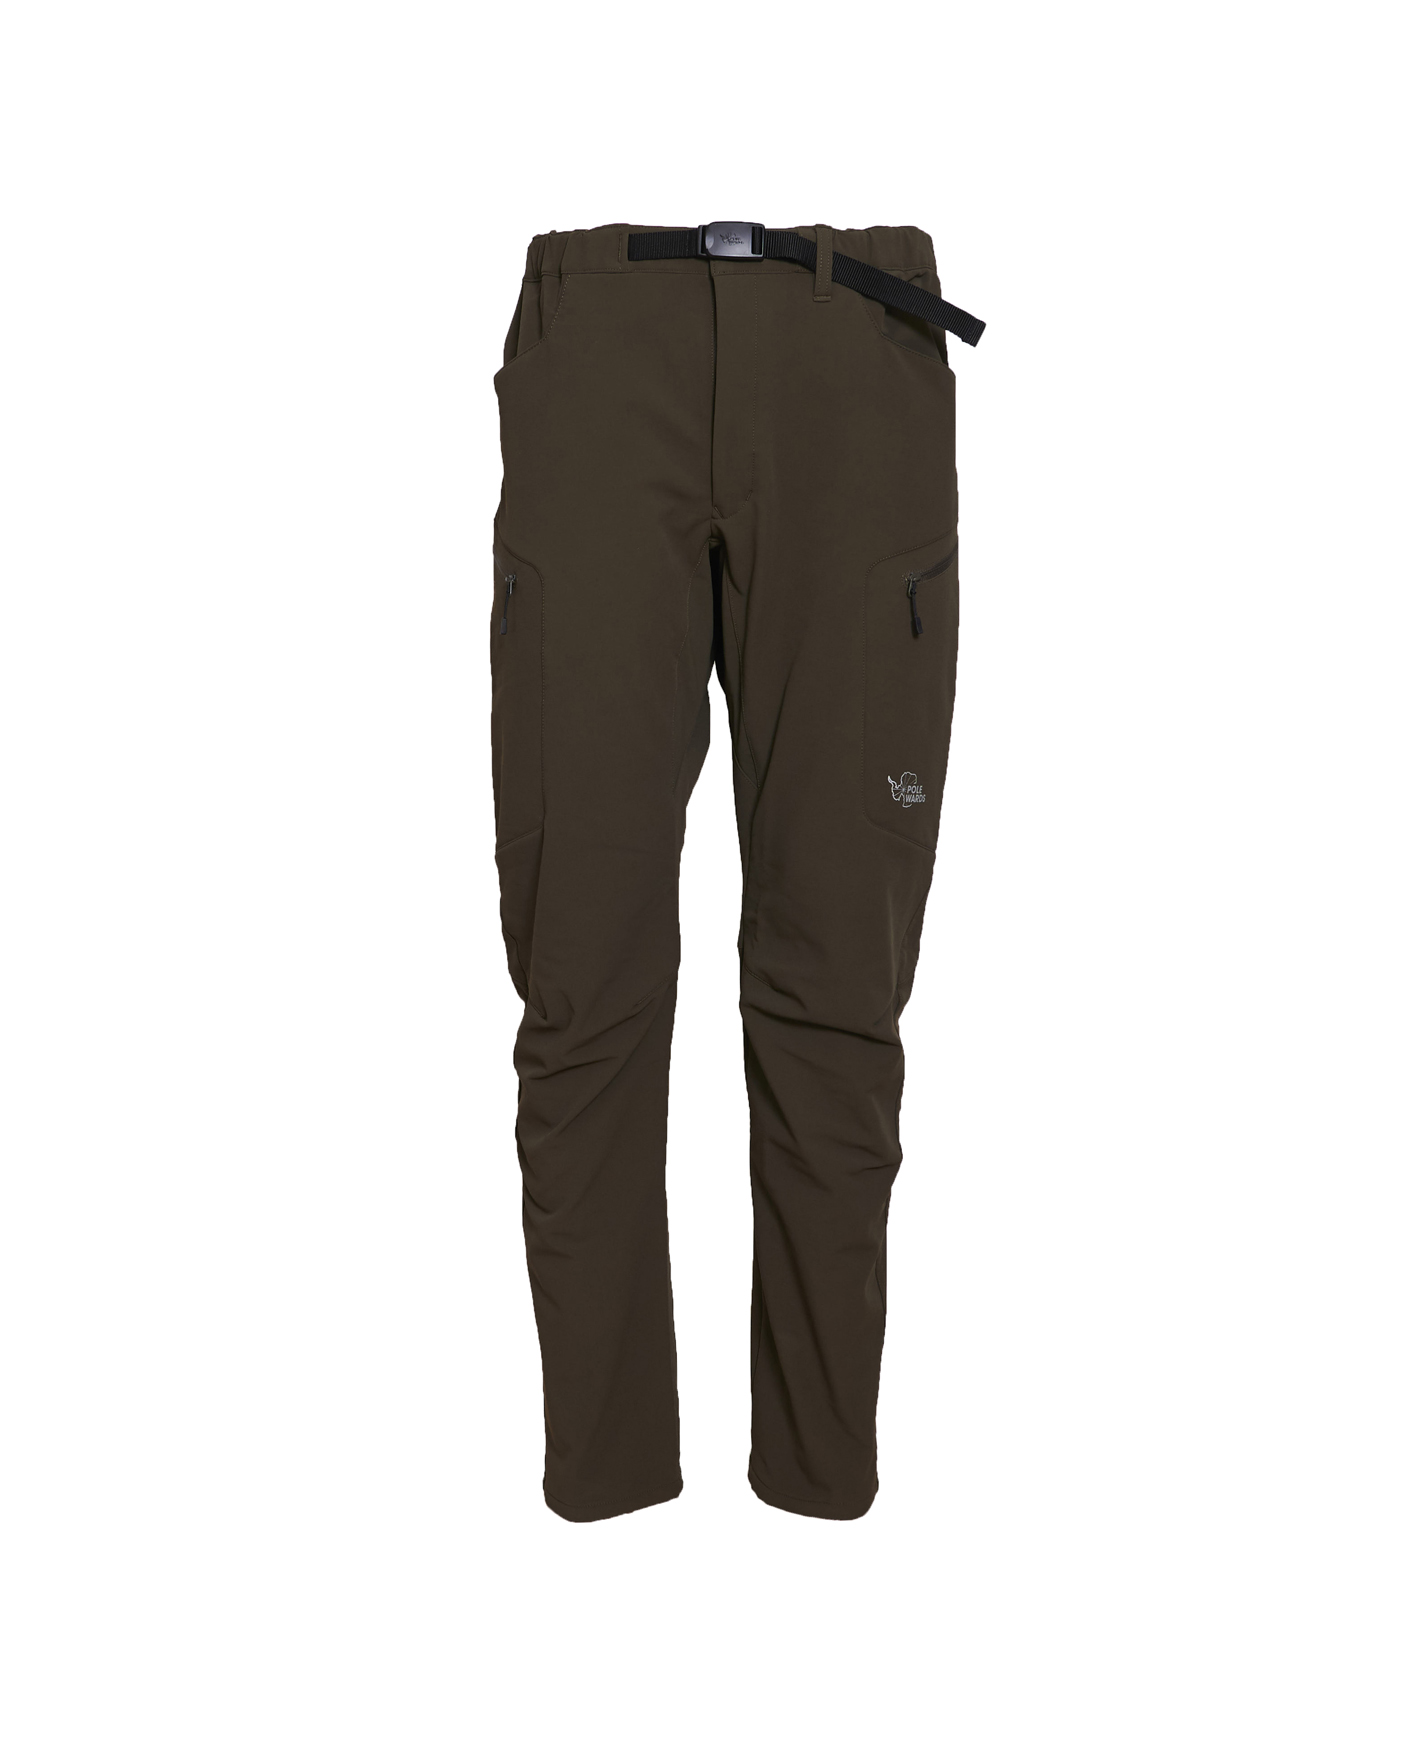 CORDURA Alpine Thermal Pants